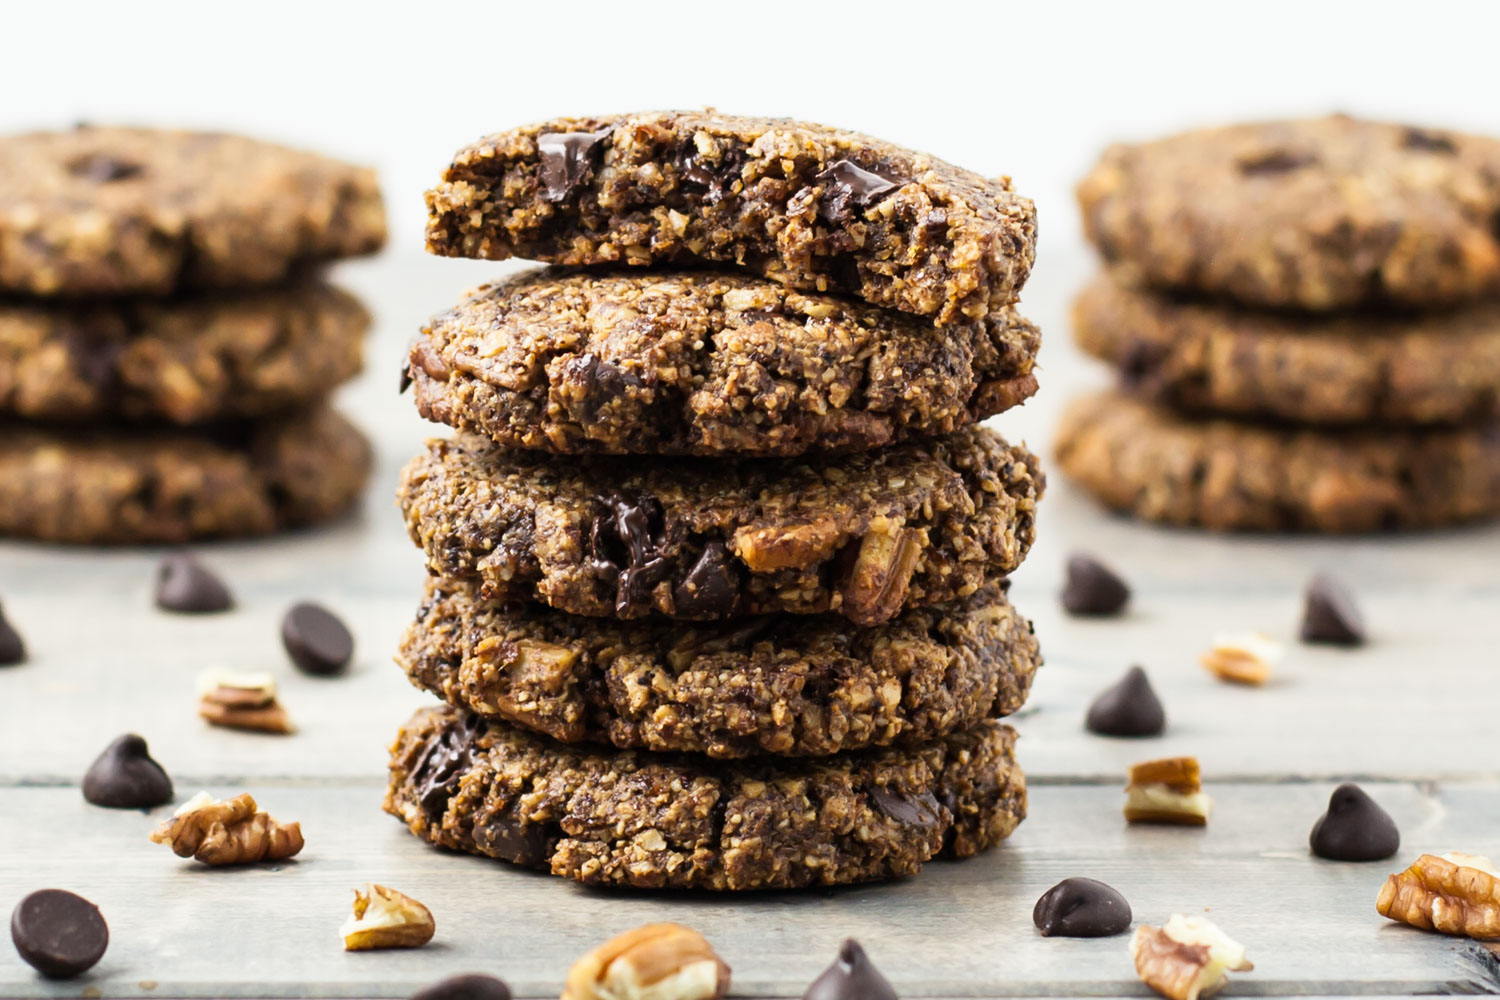 Whole Food Plant Based Chocolate Chip Cookies